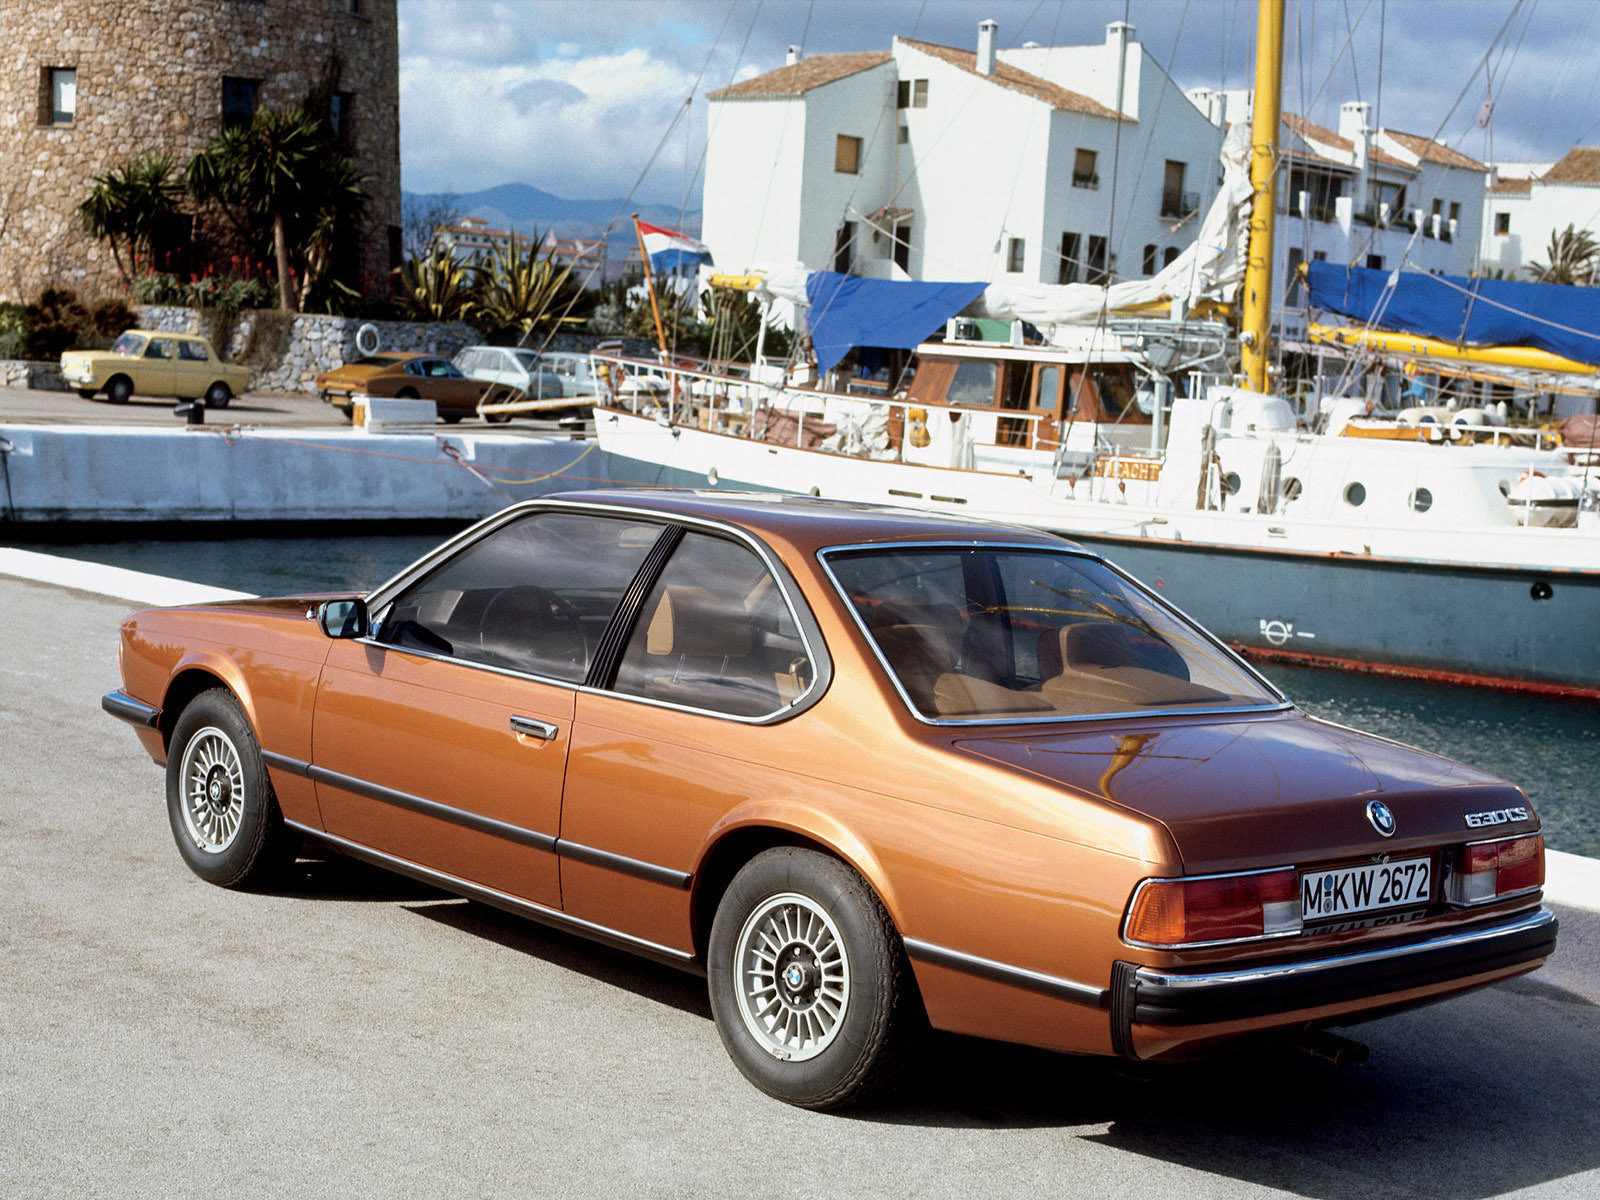 Car in pictures - car photo gallery » BMW 6-Series 630cs E24 1976-1979 Photo 02